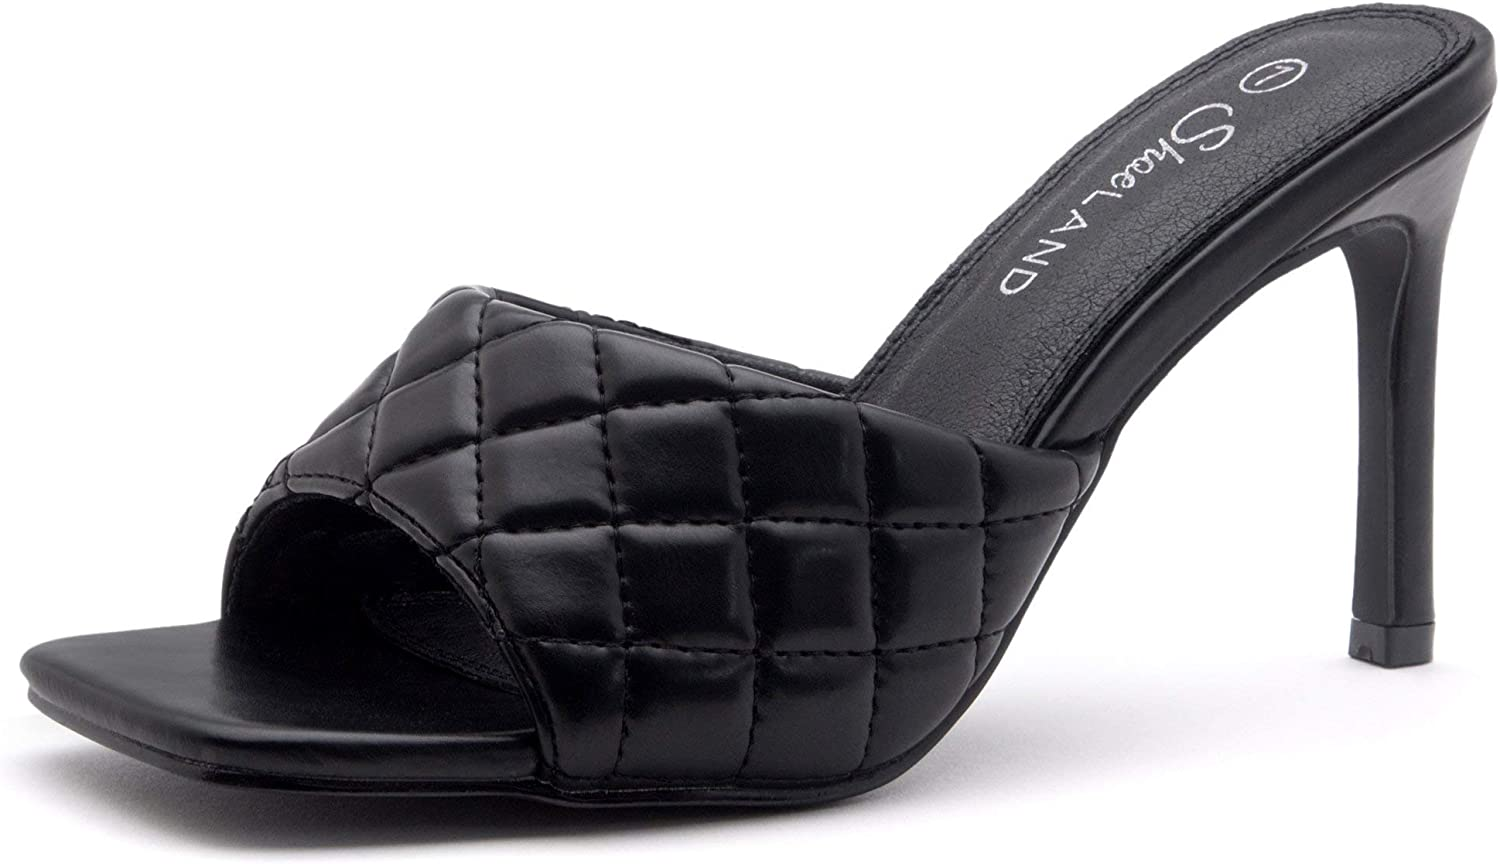 Shoe Land MELROSE Women's Square Open Toe High Heel Sandals Quilted Single Band Slip on Mules